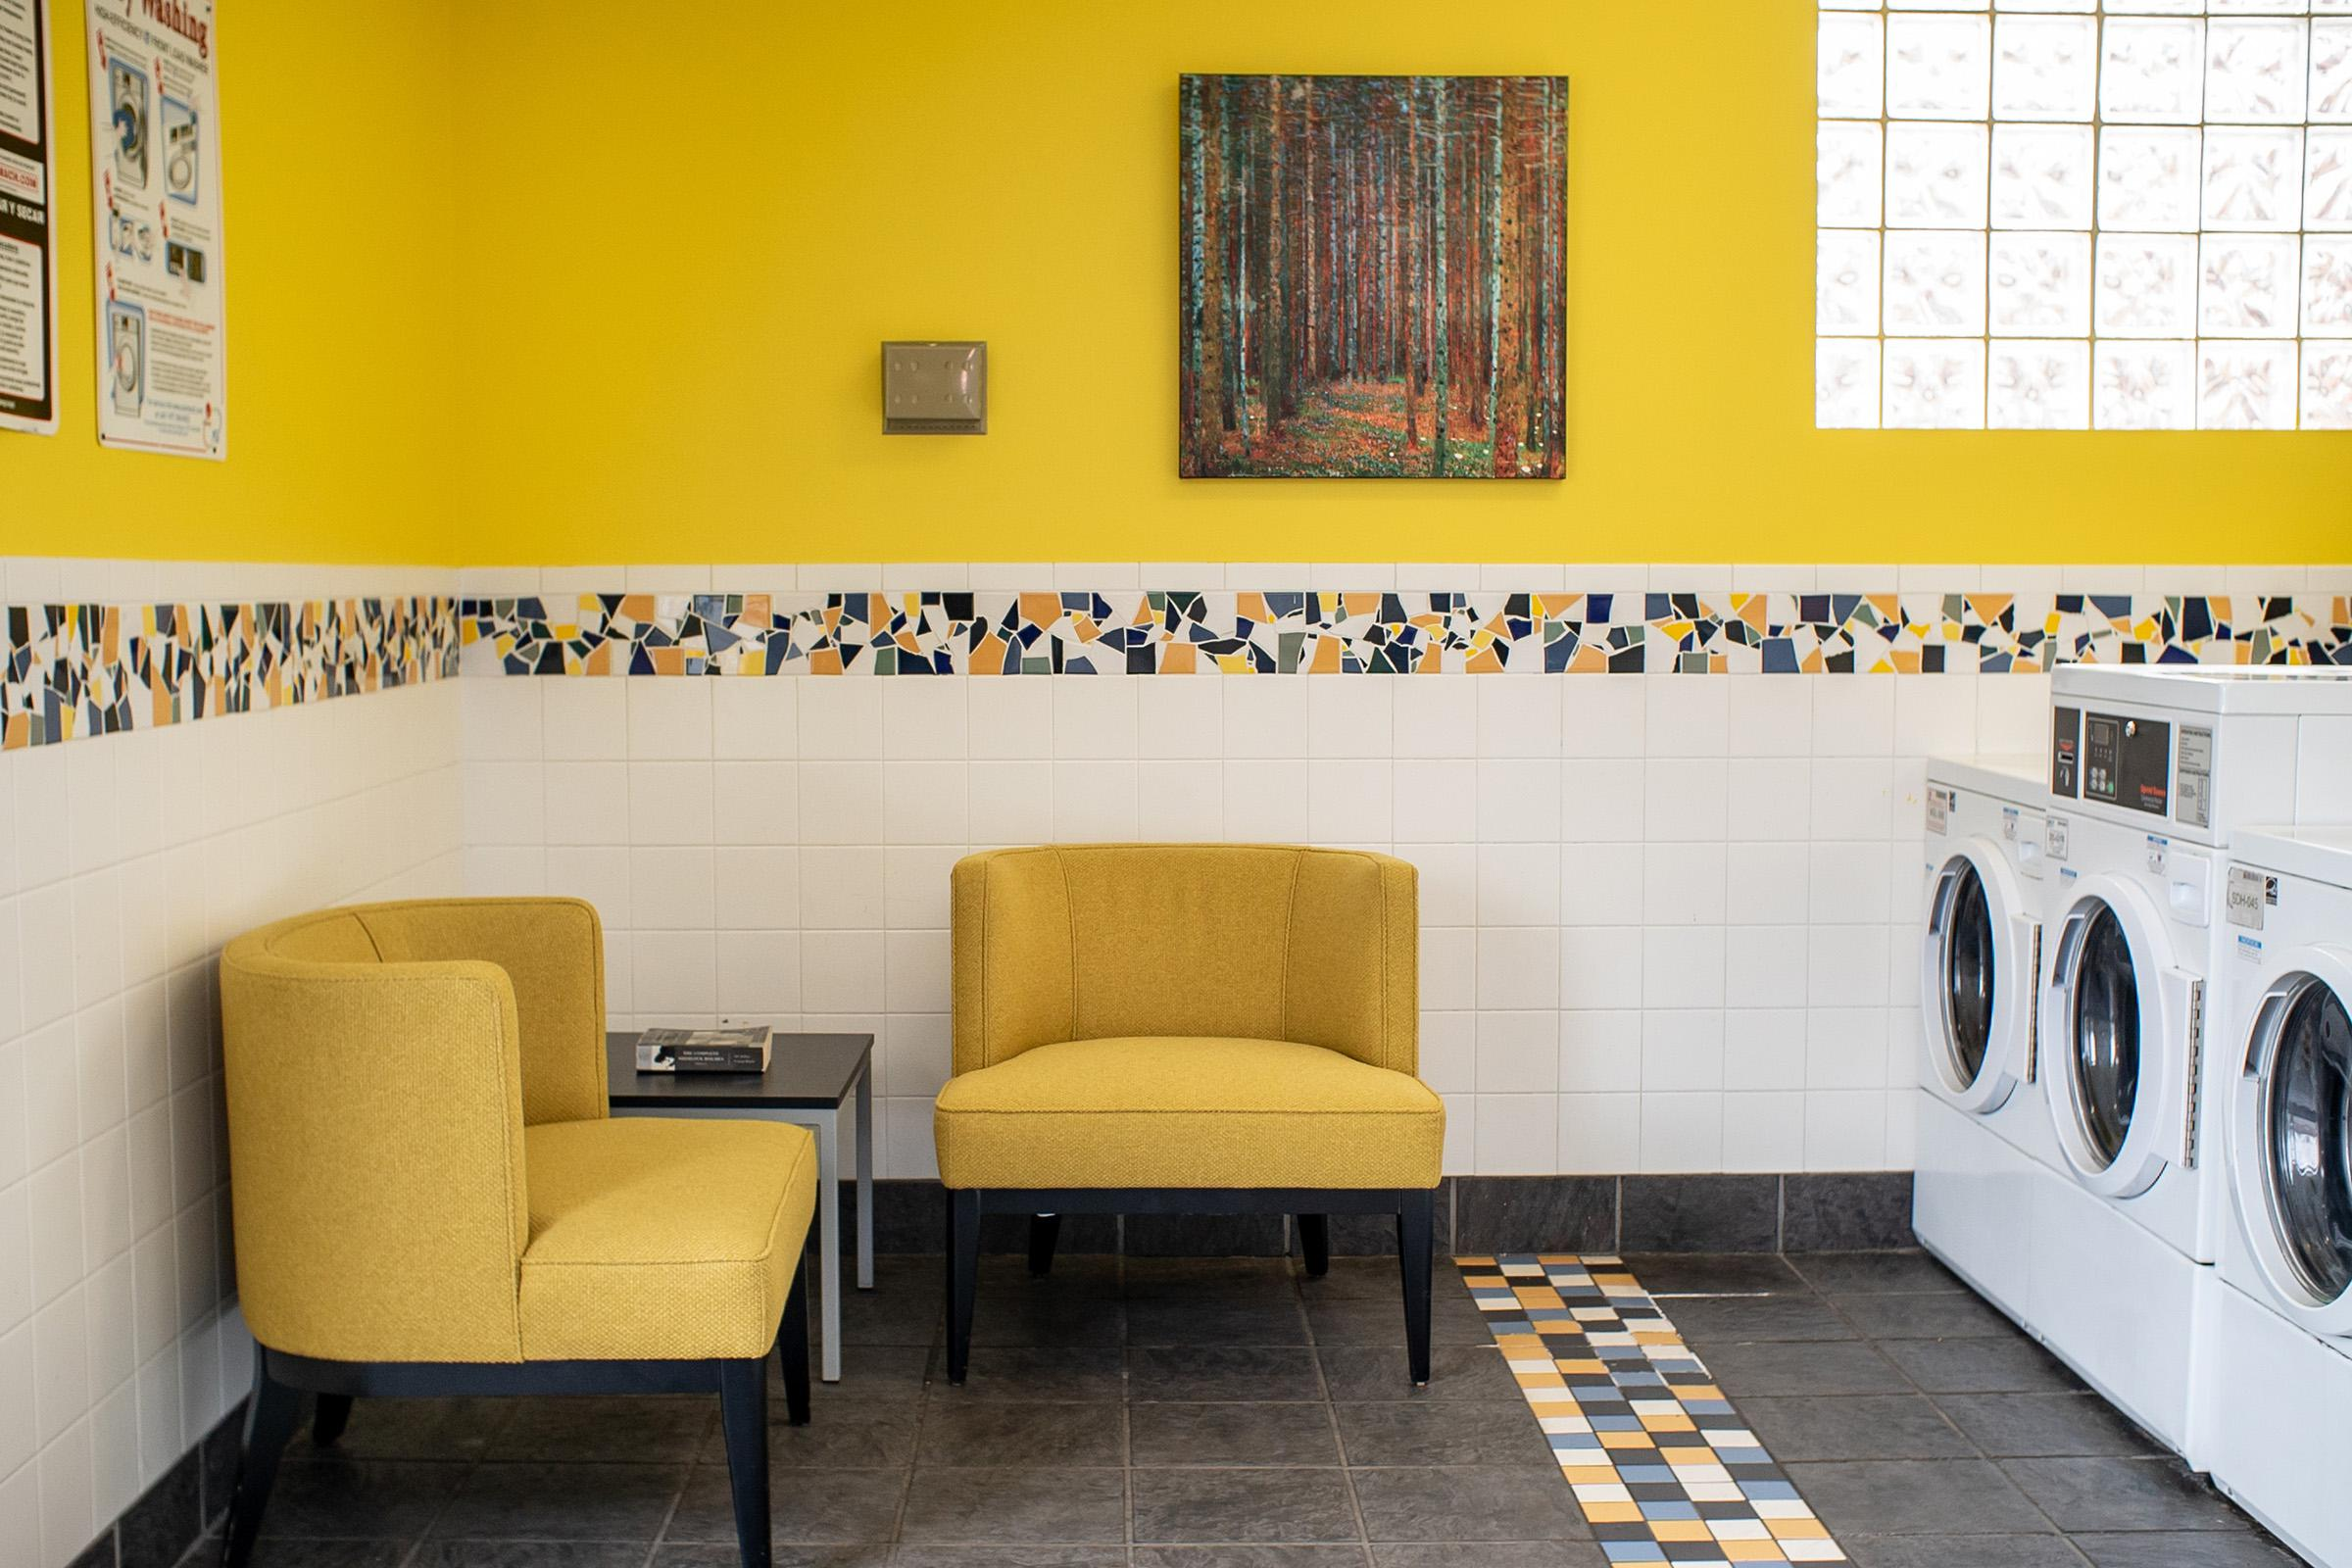 a room with yellow walls